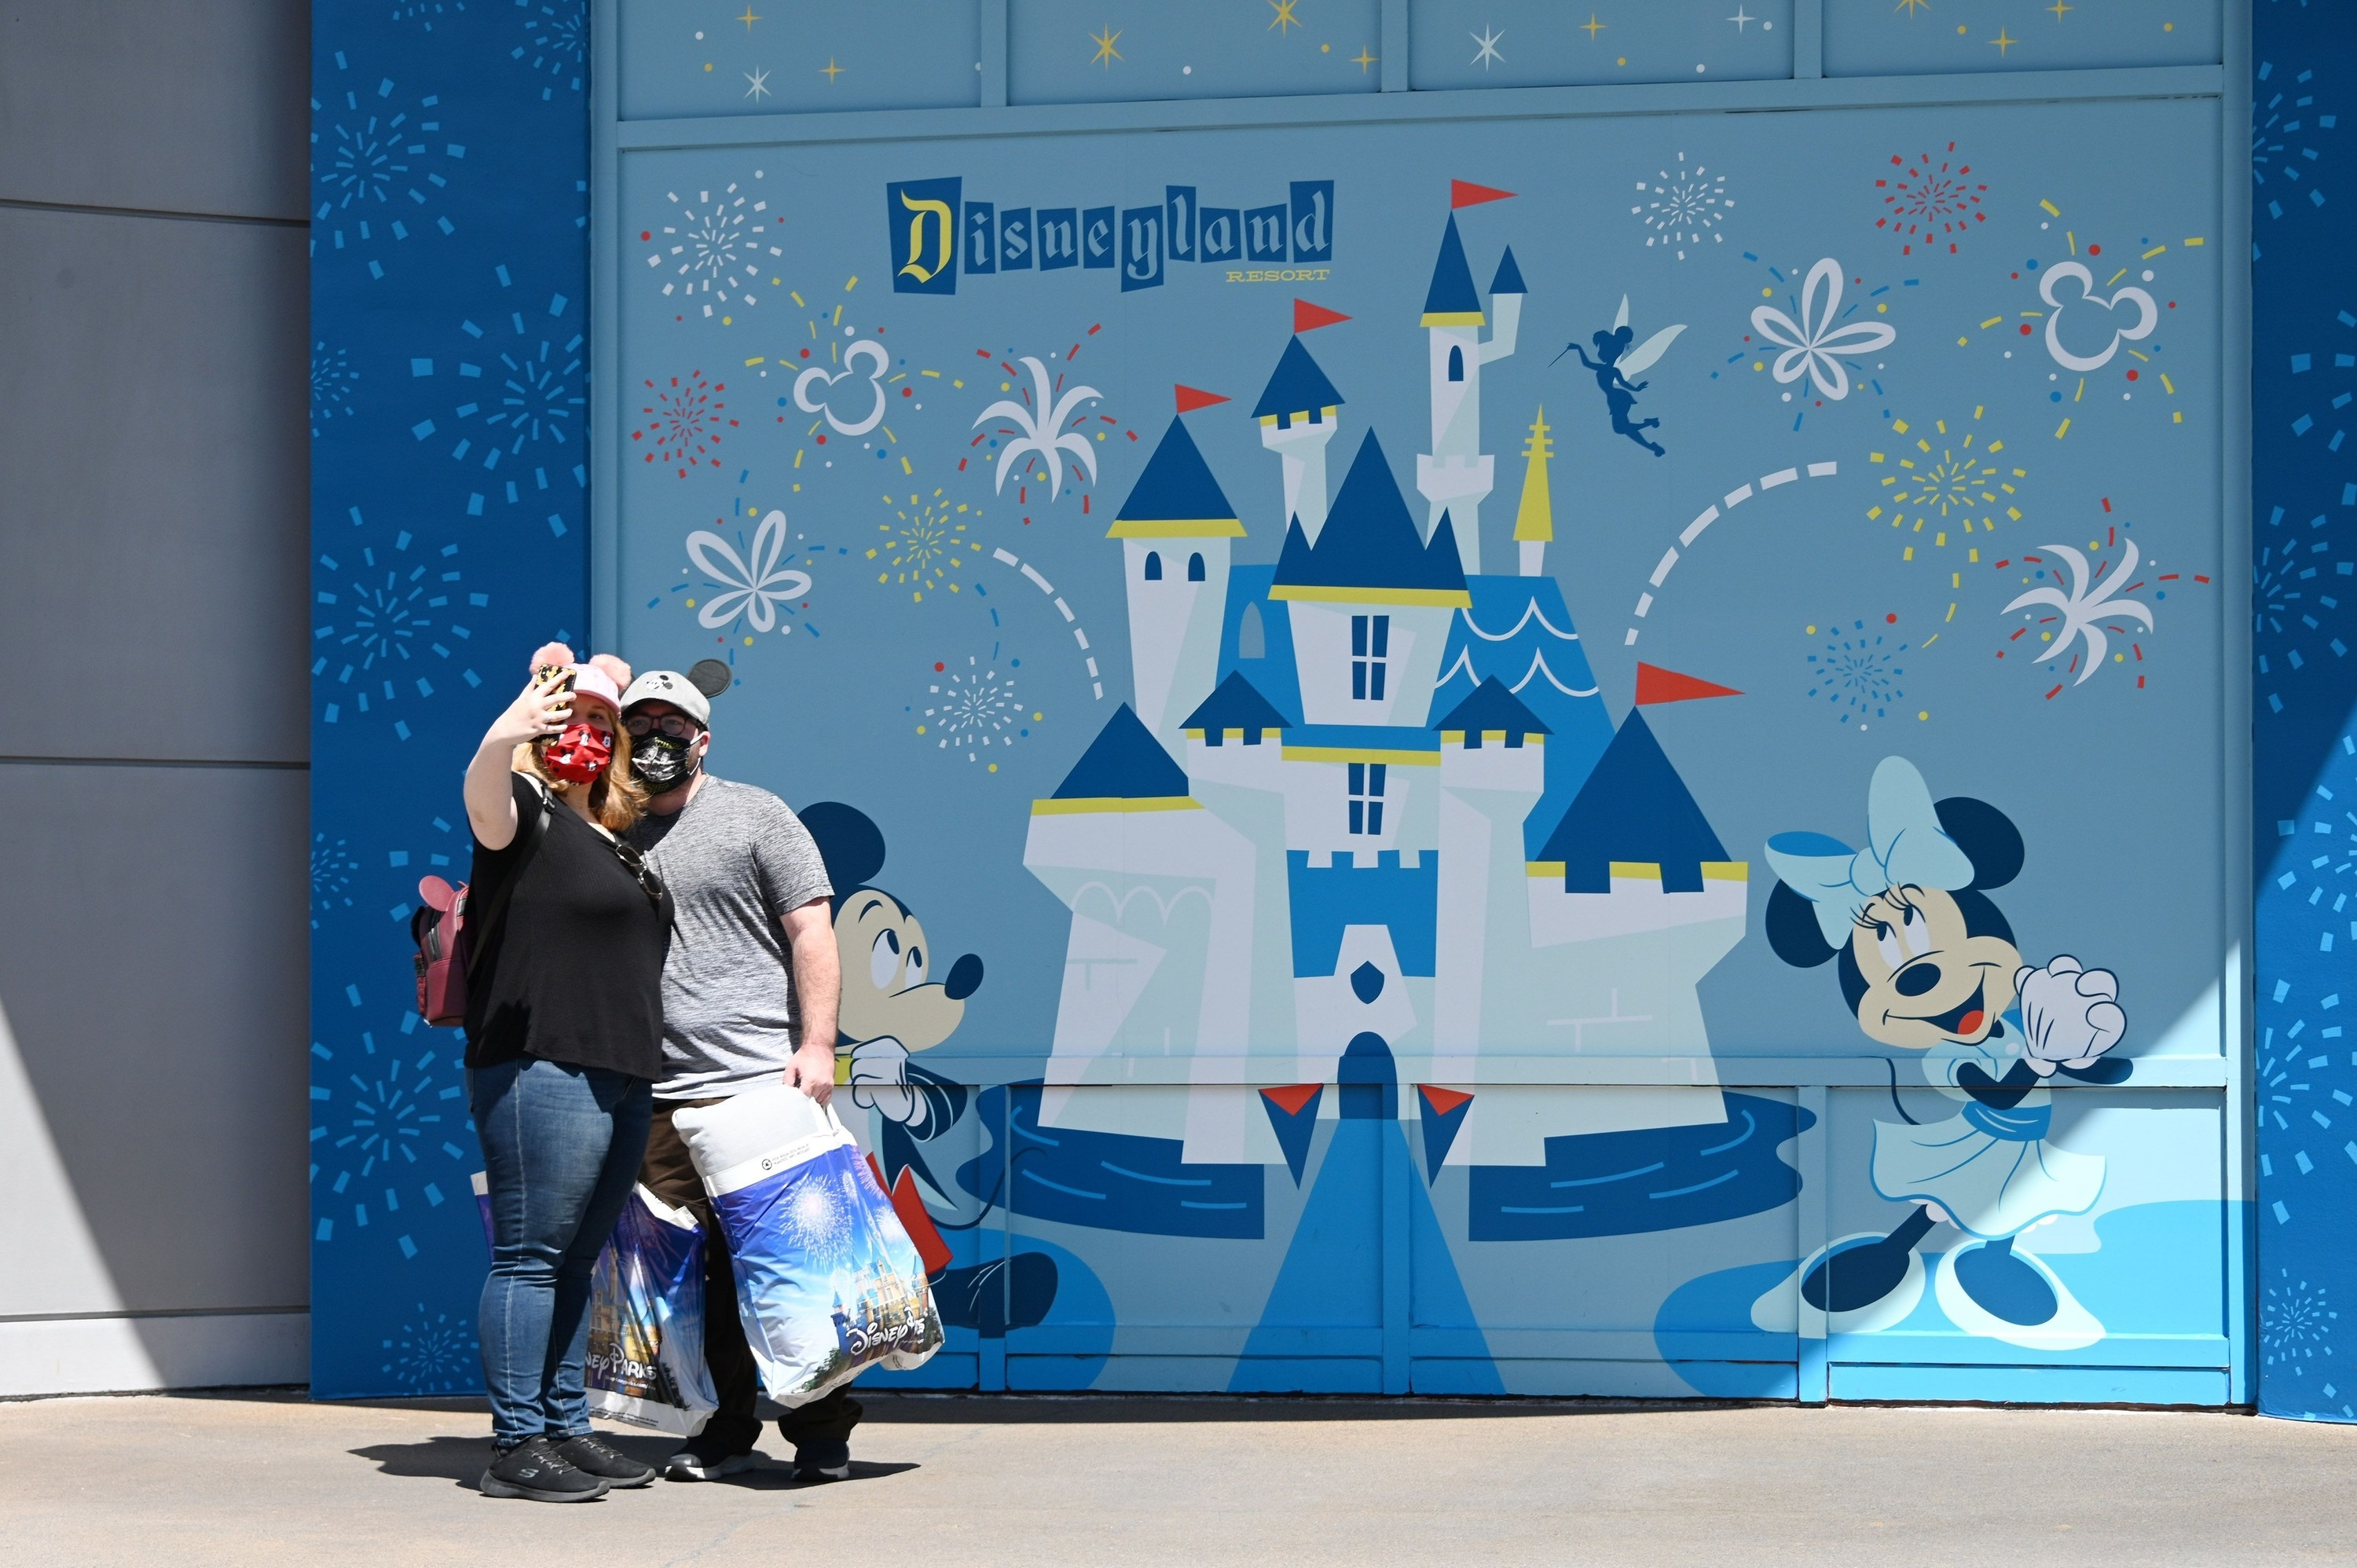 Two people take a selfie in front of a Disneyland mural